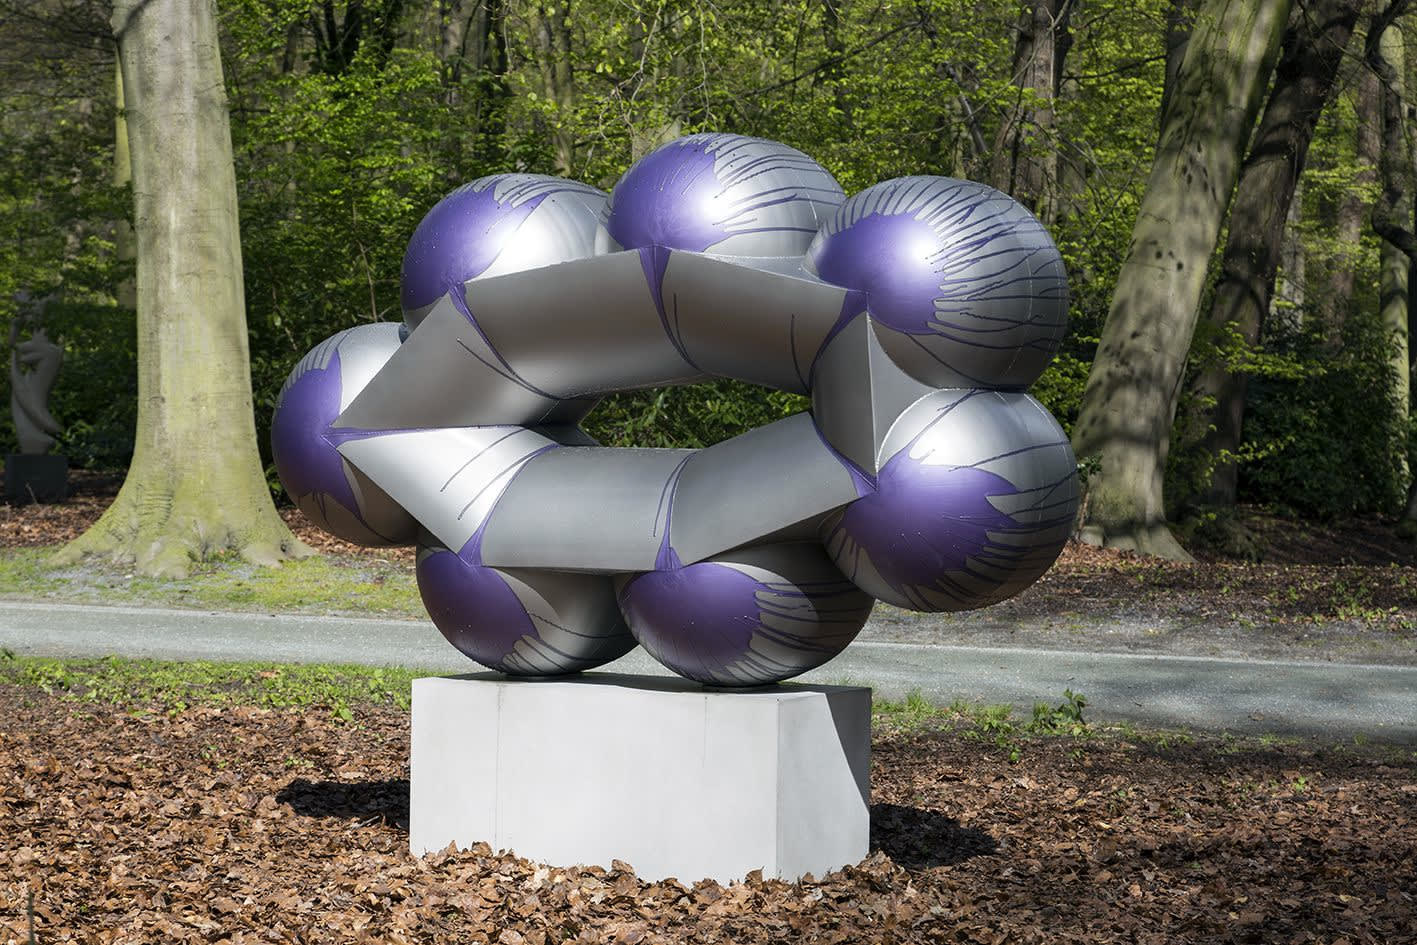 An image containing a sculpture by Richard Deacon of painted and lacquered stainless steel